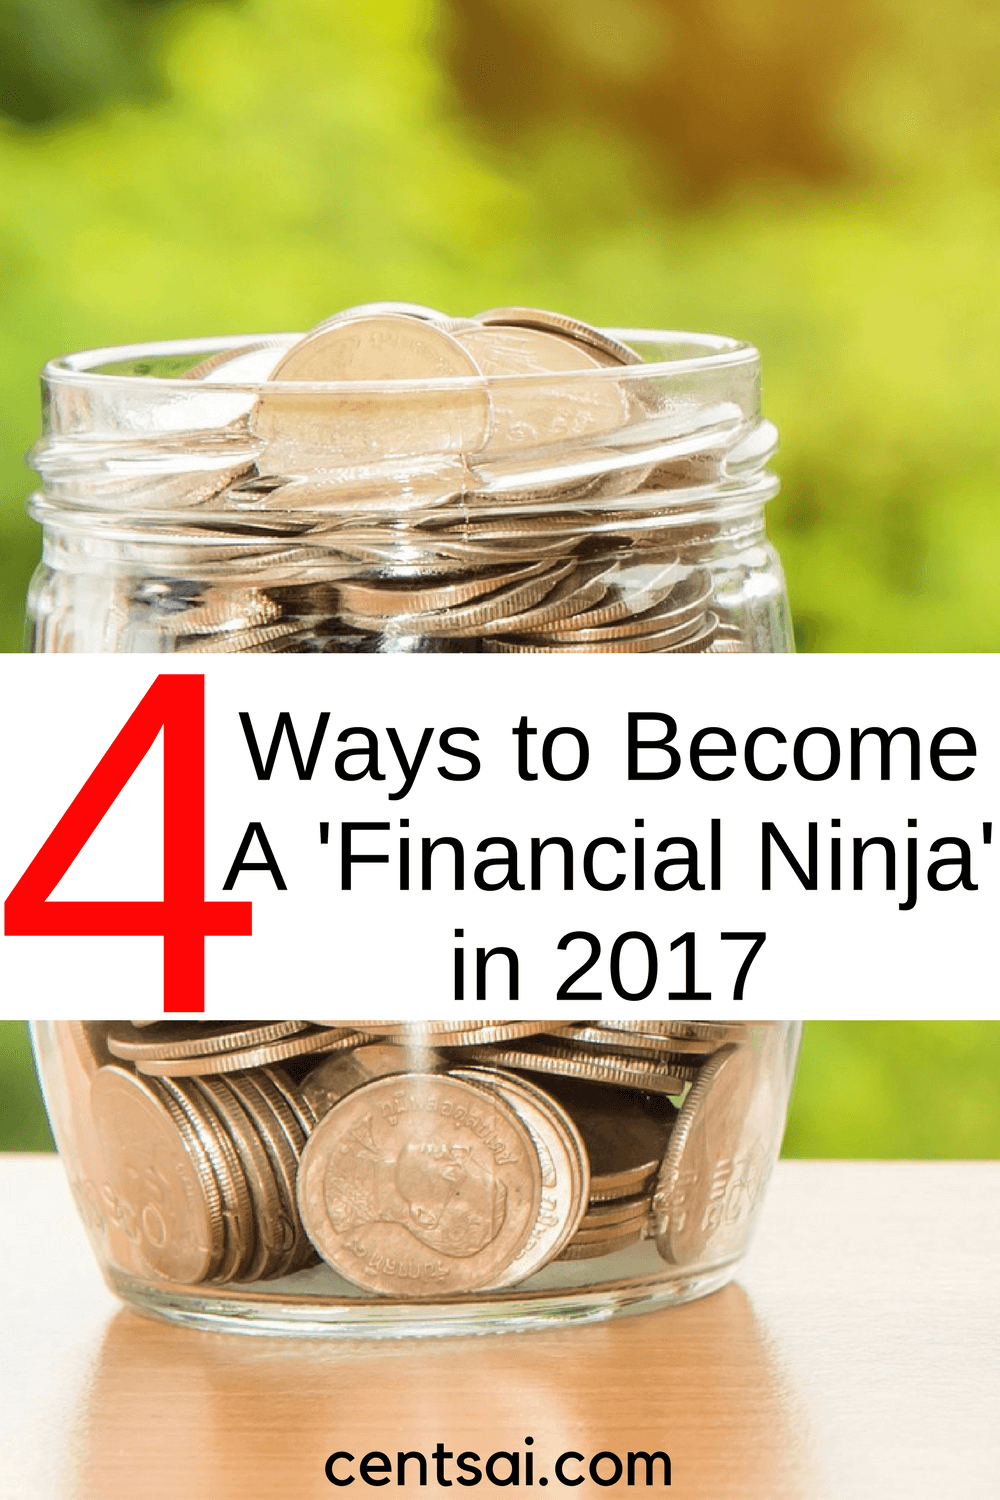 4 Ways to Become A 'Financial Ninja' in 2017